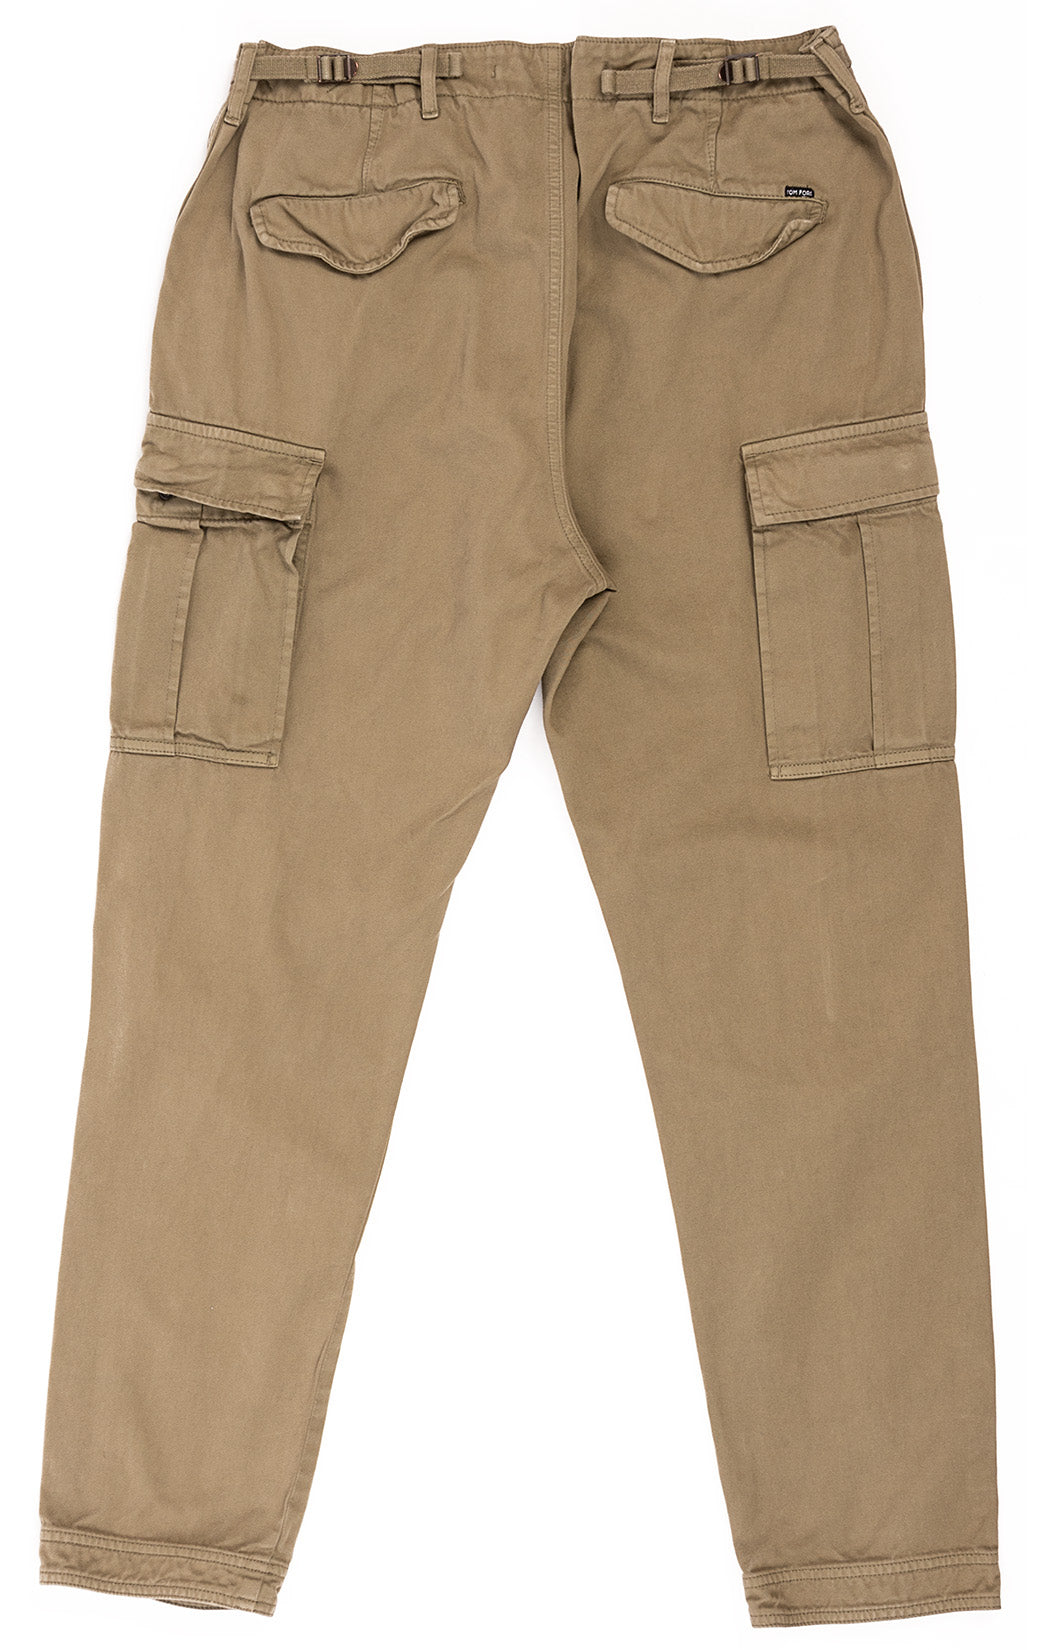 Army green cargo pant with front zipper, side-front pockets, back pockets, front thigh pockets